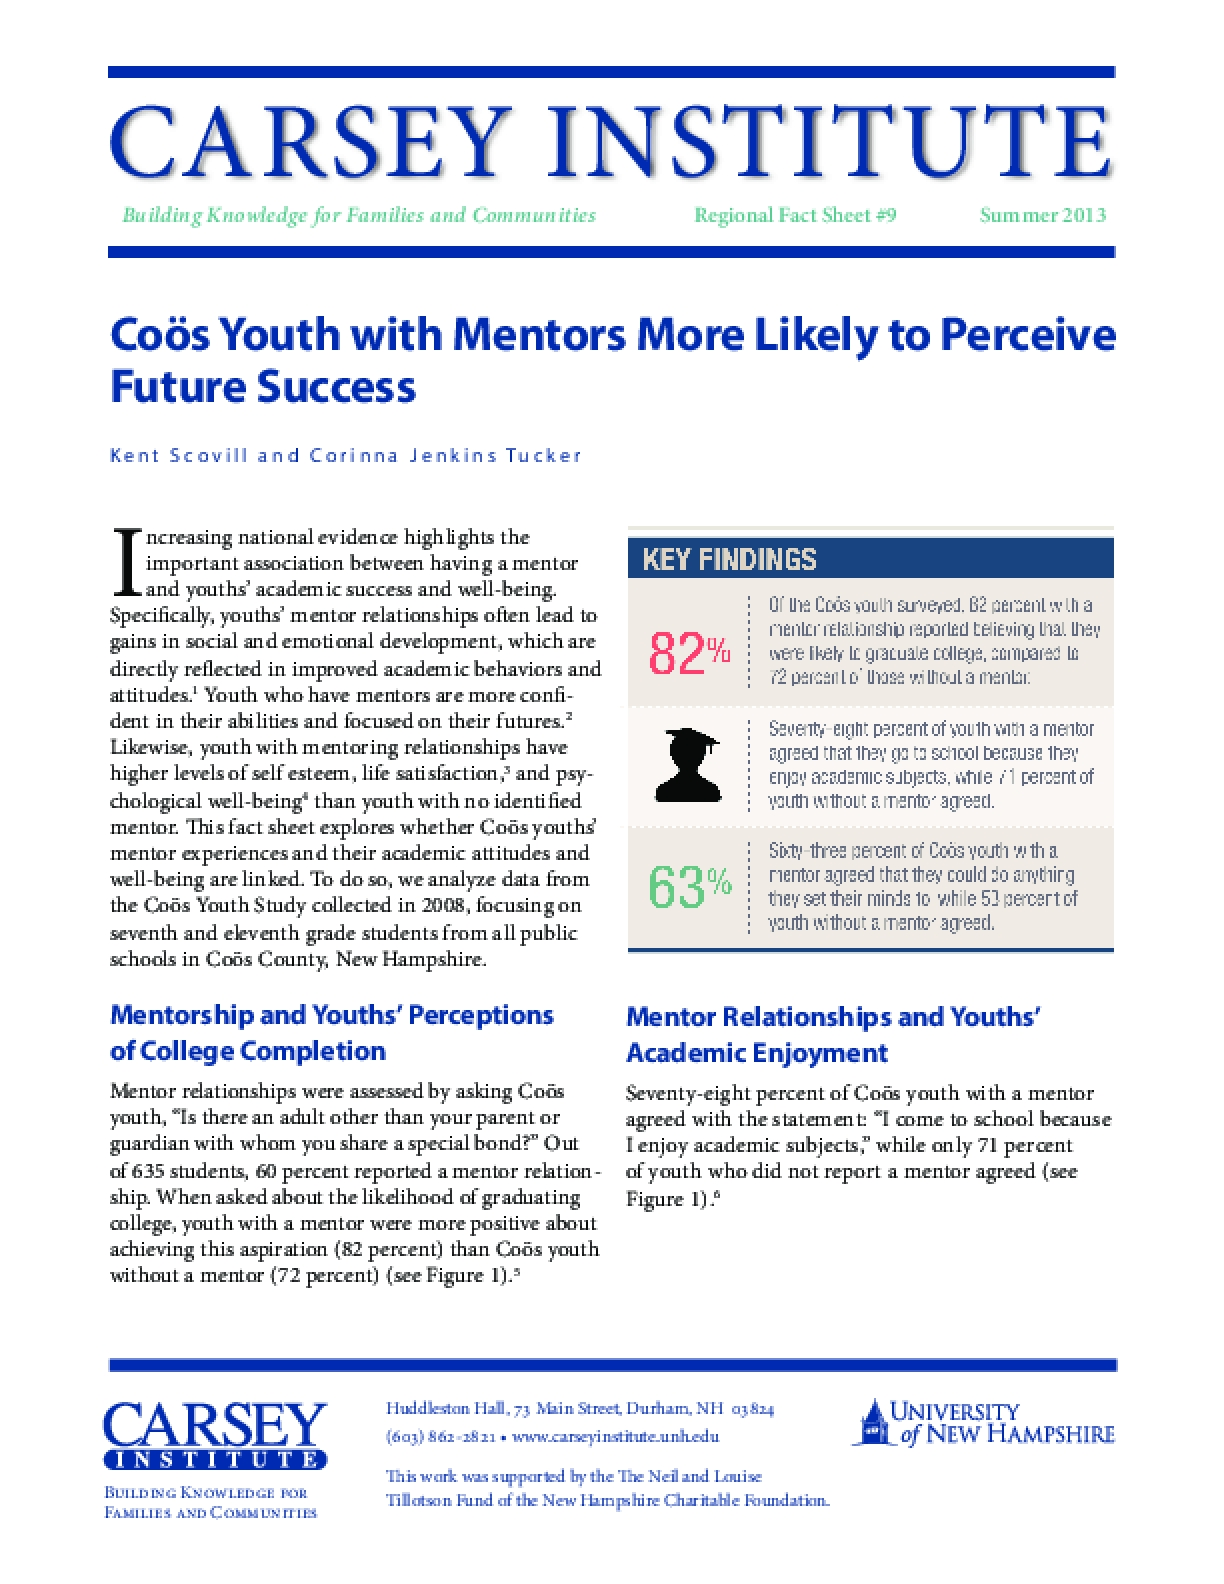 Coös Youth with Mentors More Likely to Perceive Future Success